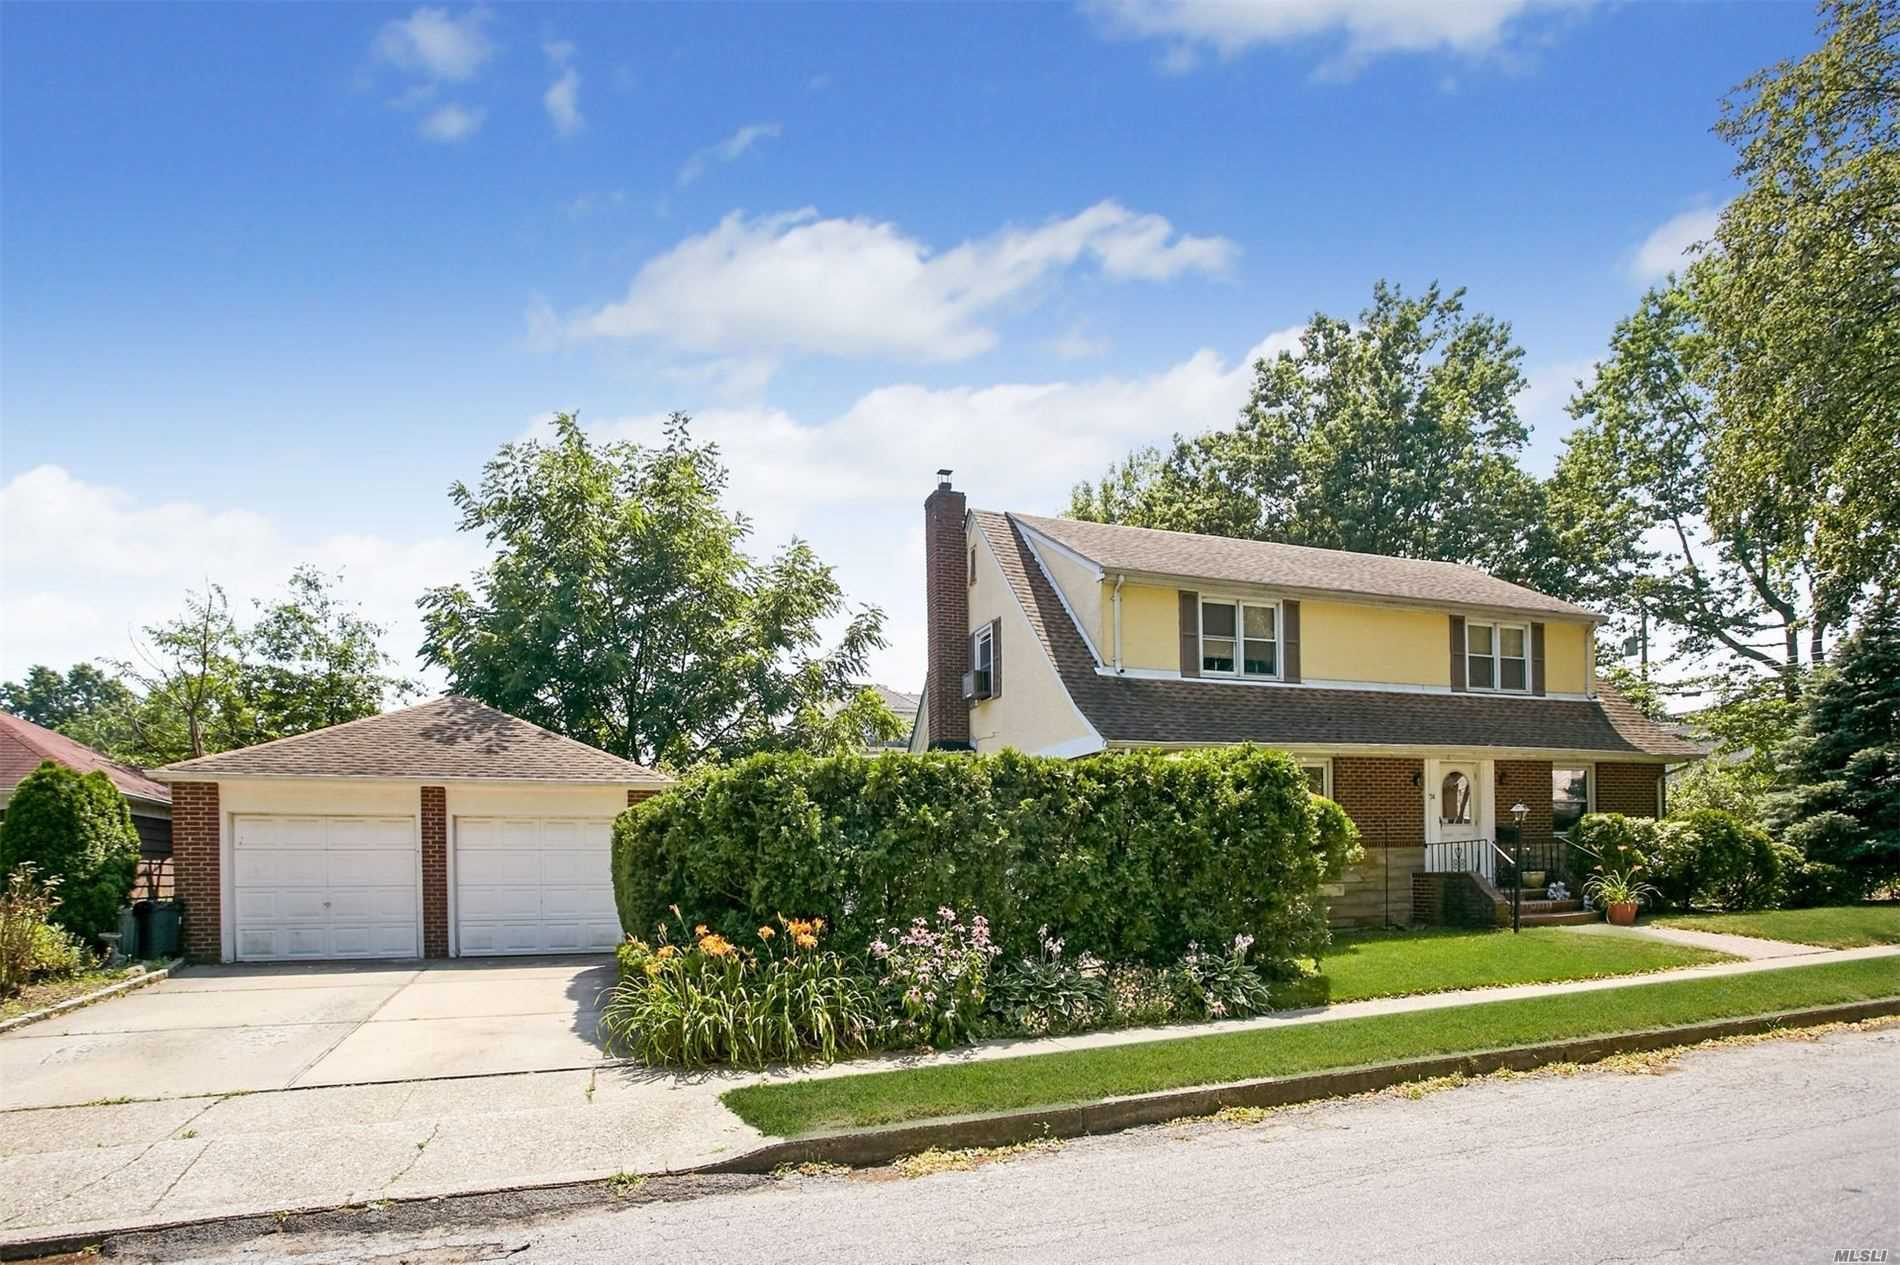 Property for sale at 74 Rose Ave, Floral Park,  New York 11001